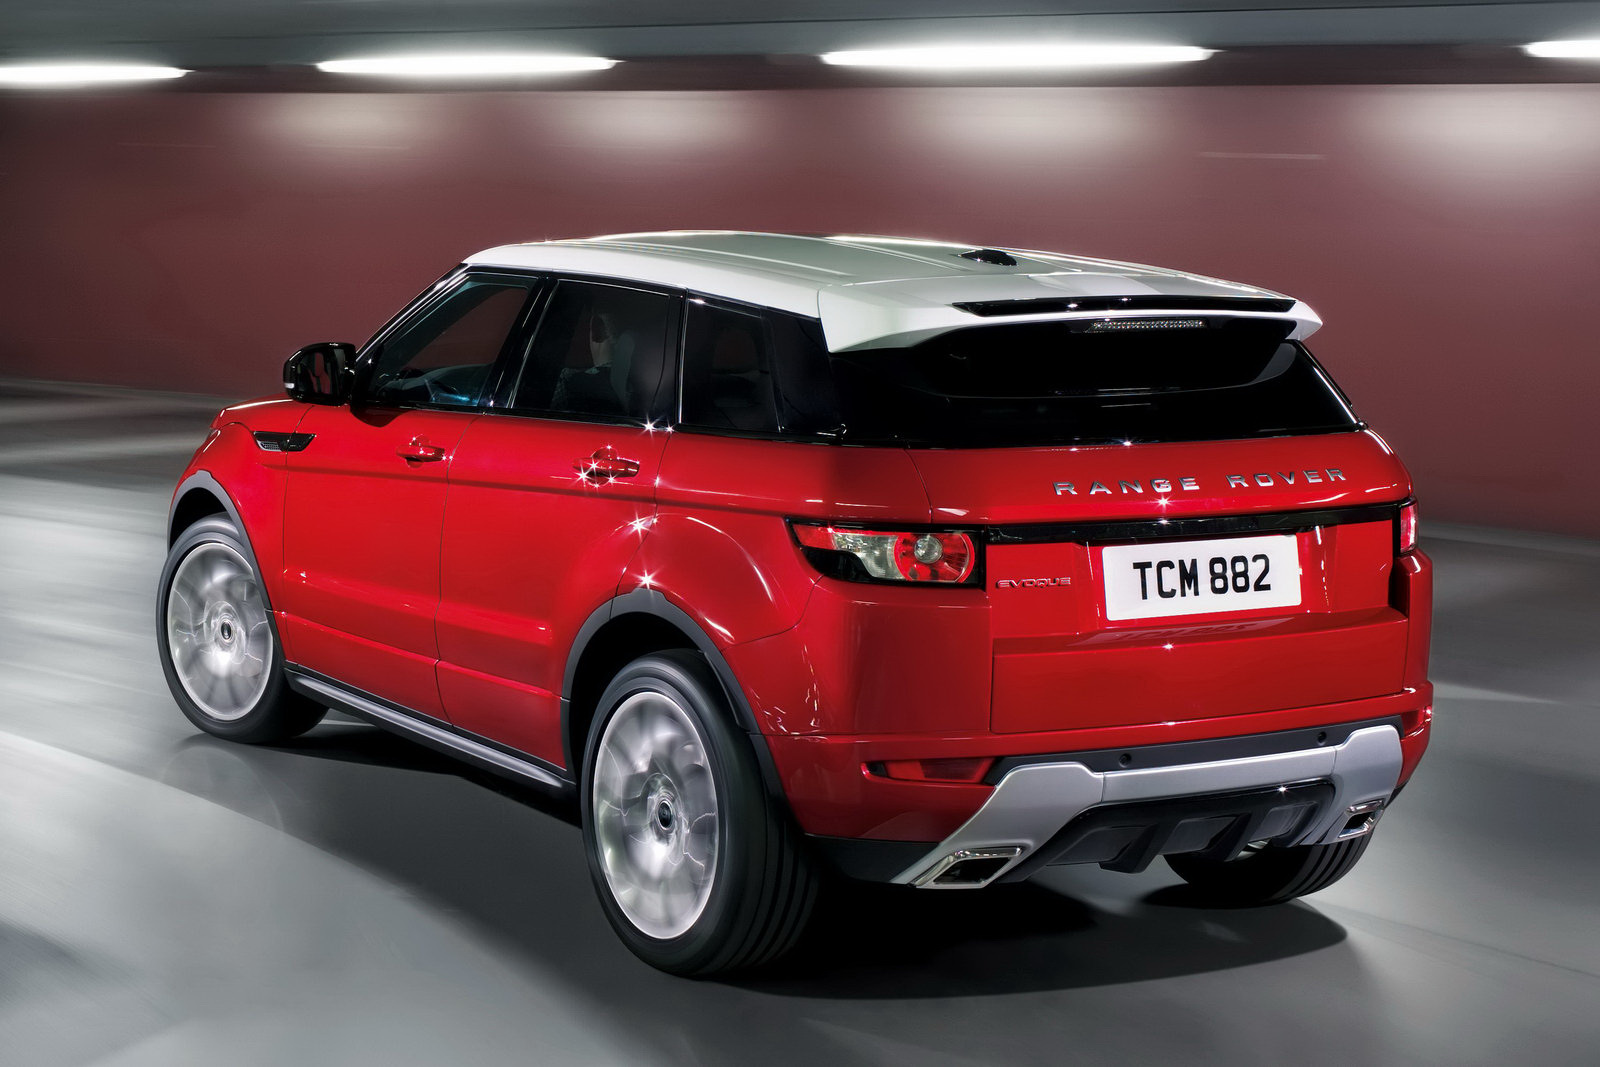 Most Desirable Cars In The World The Range Rover Evoque